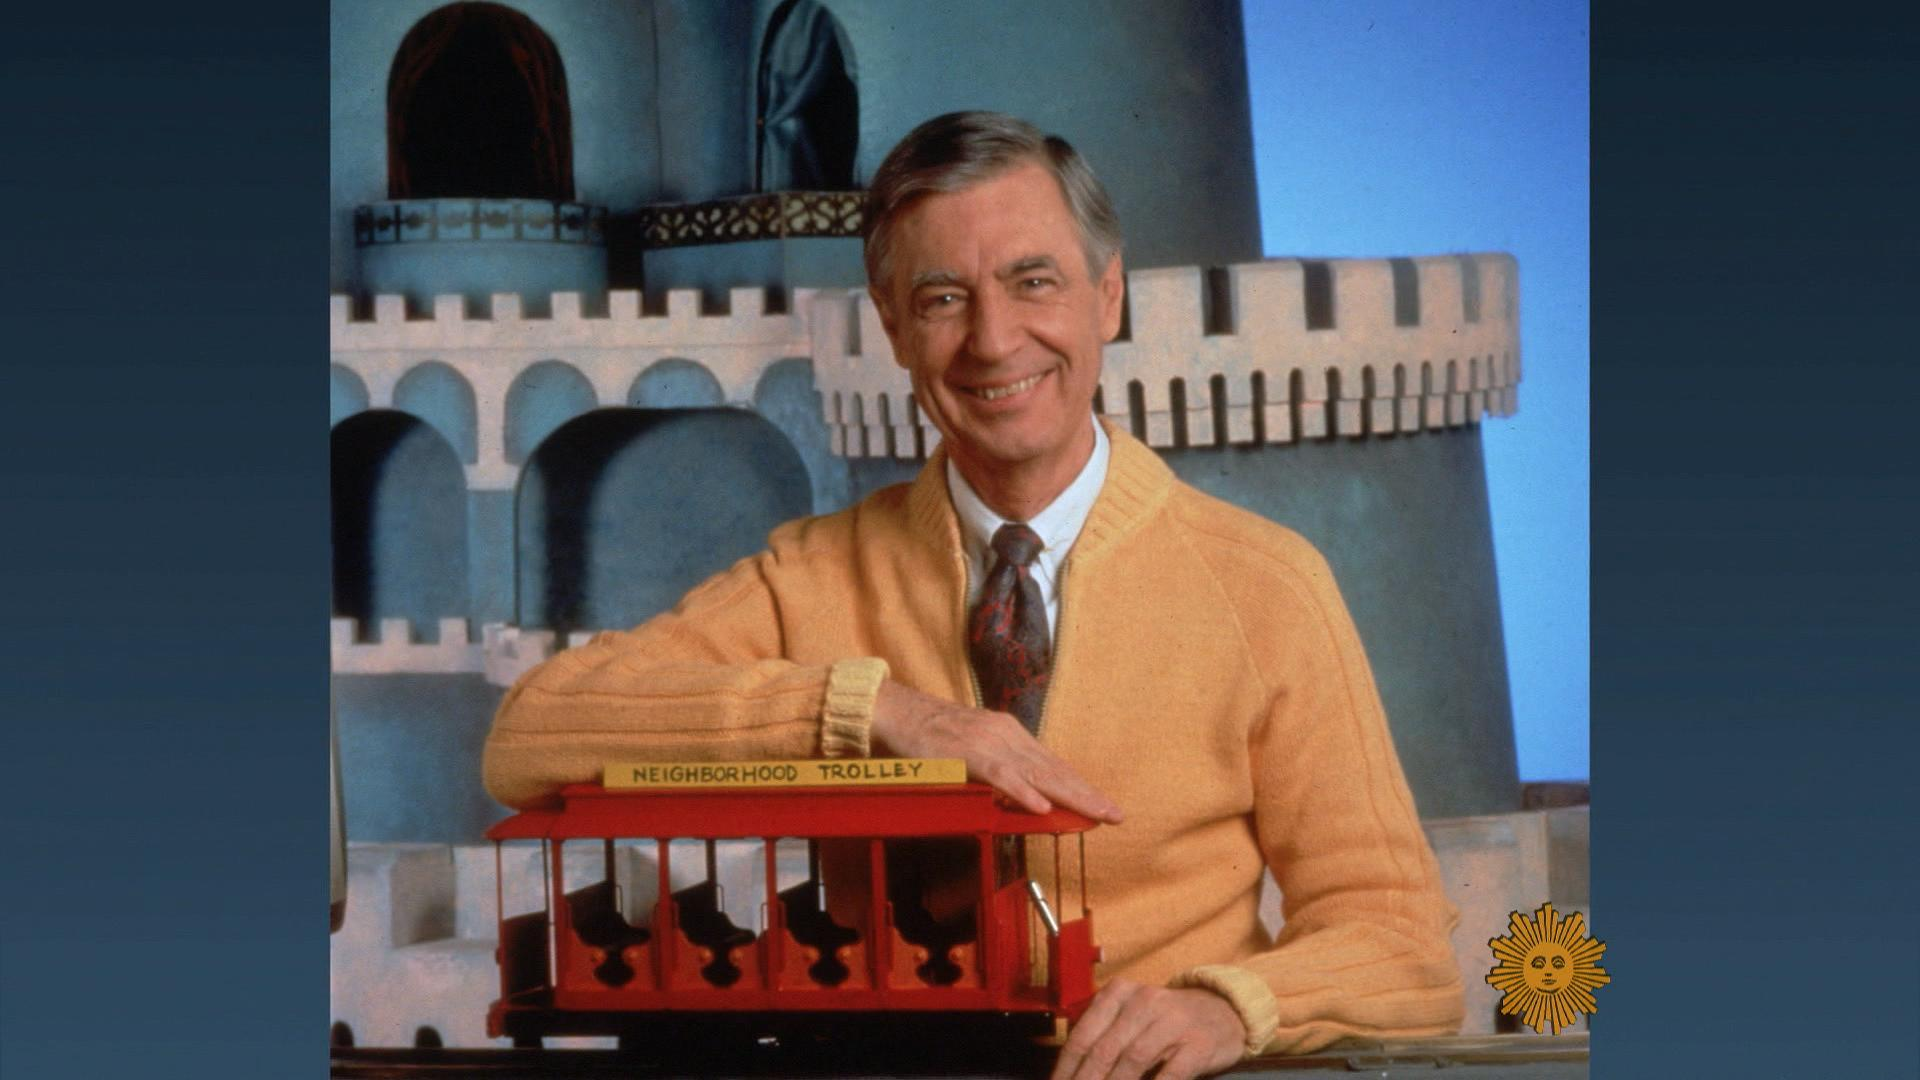 Watch Sunday Morning Mr Rogers A True Neighbor Full Show On Cbs All Access